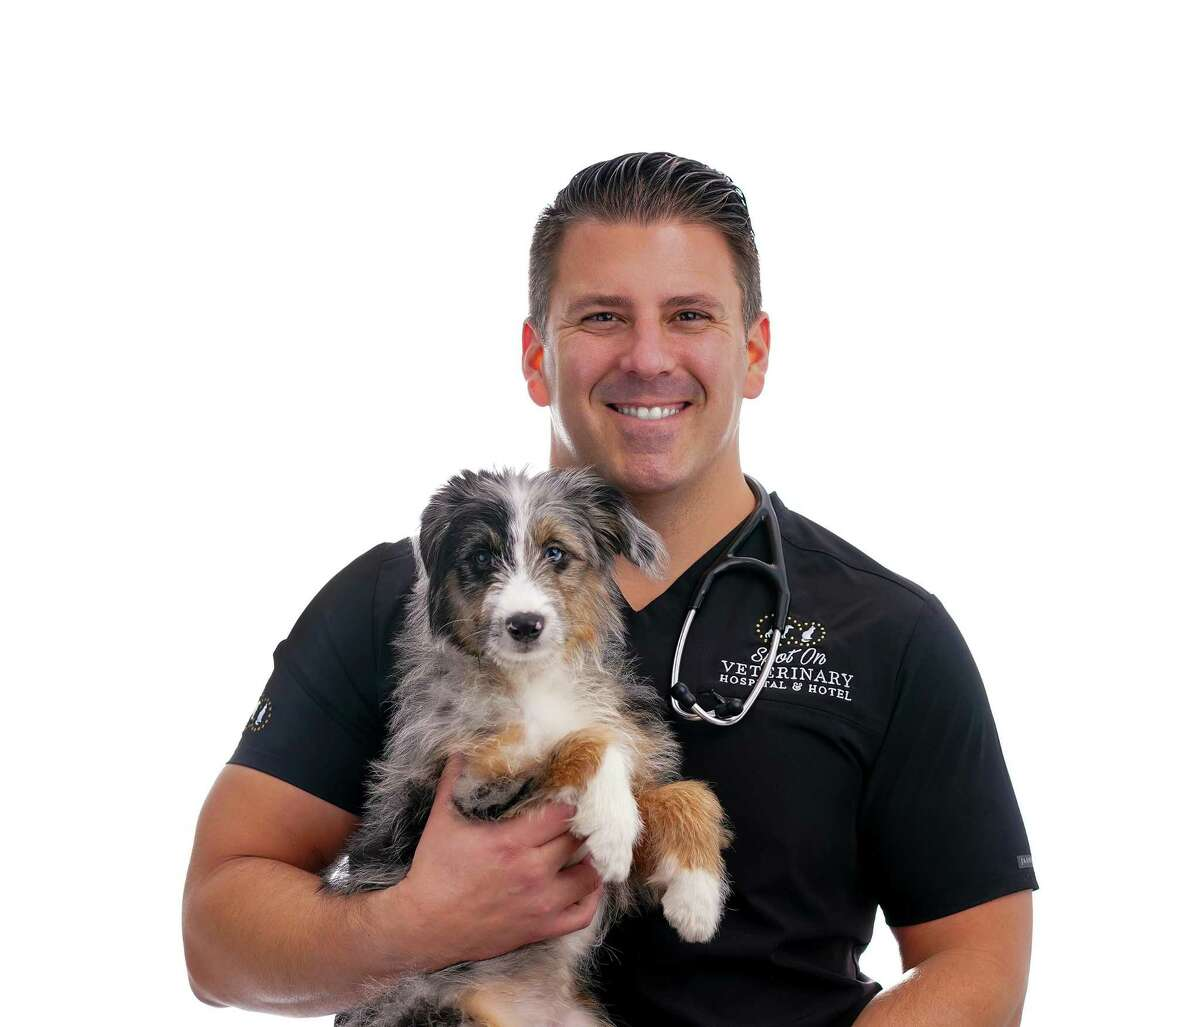 Dr. Philip Putter, owner of Spot on Veterinary Hospital and Hotel in Stamford, is one of the veterinarians who said he's been very busy in 2020 during the pandemic.